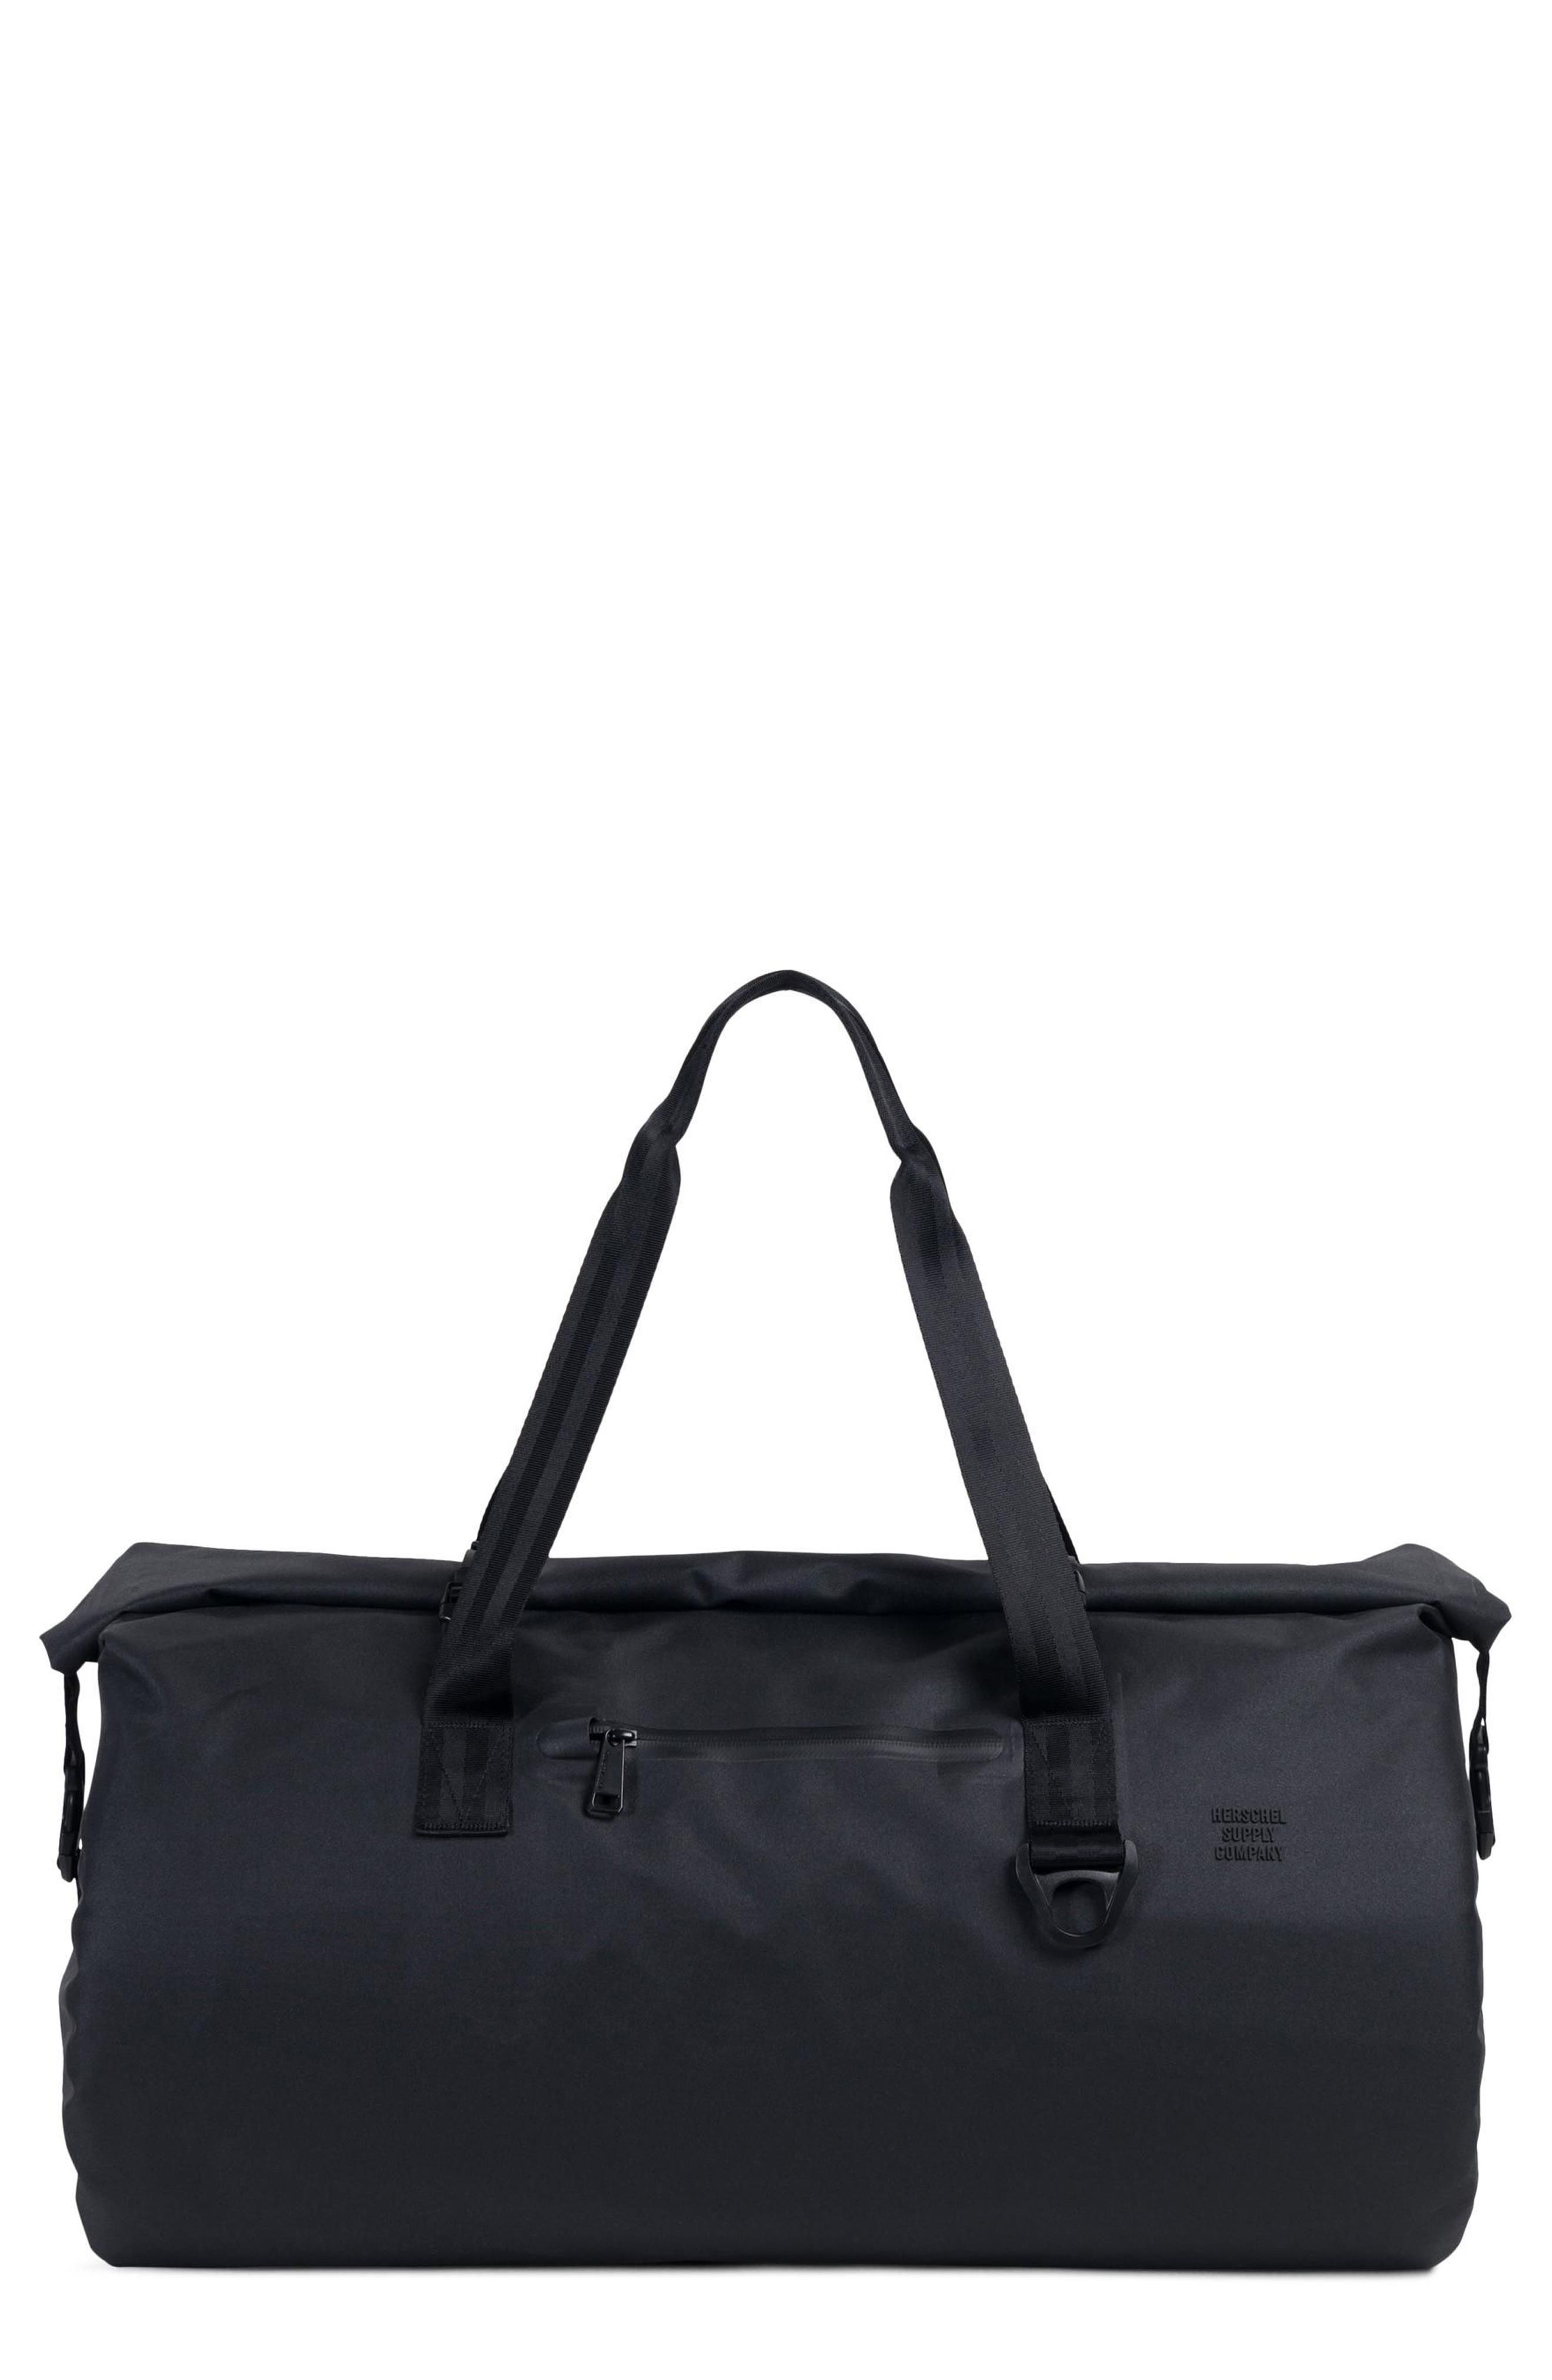 Alternate Image 1 Selected - Herschel Supply Co. Tarpaulin Coast Studio Duffel Bag